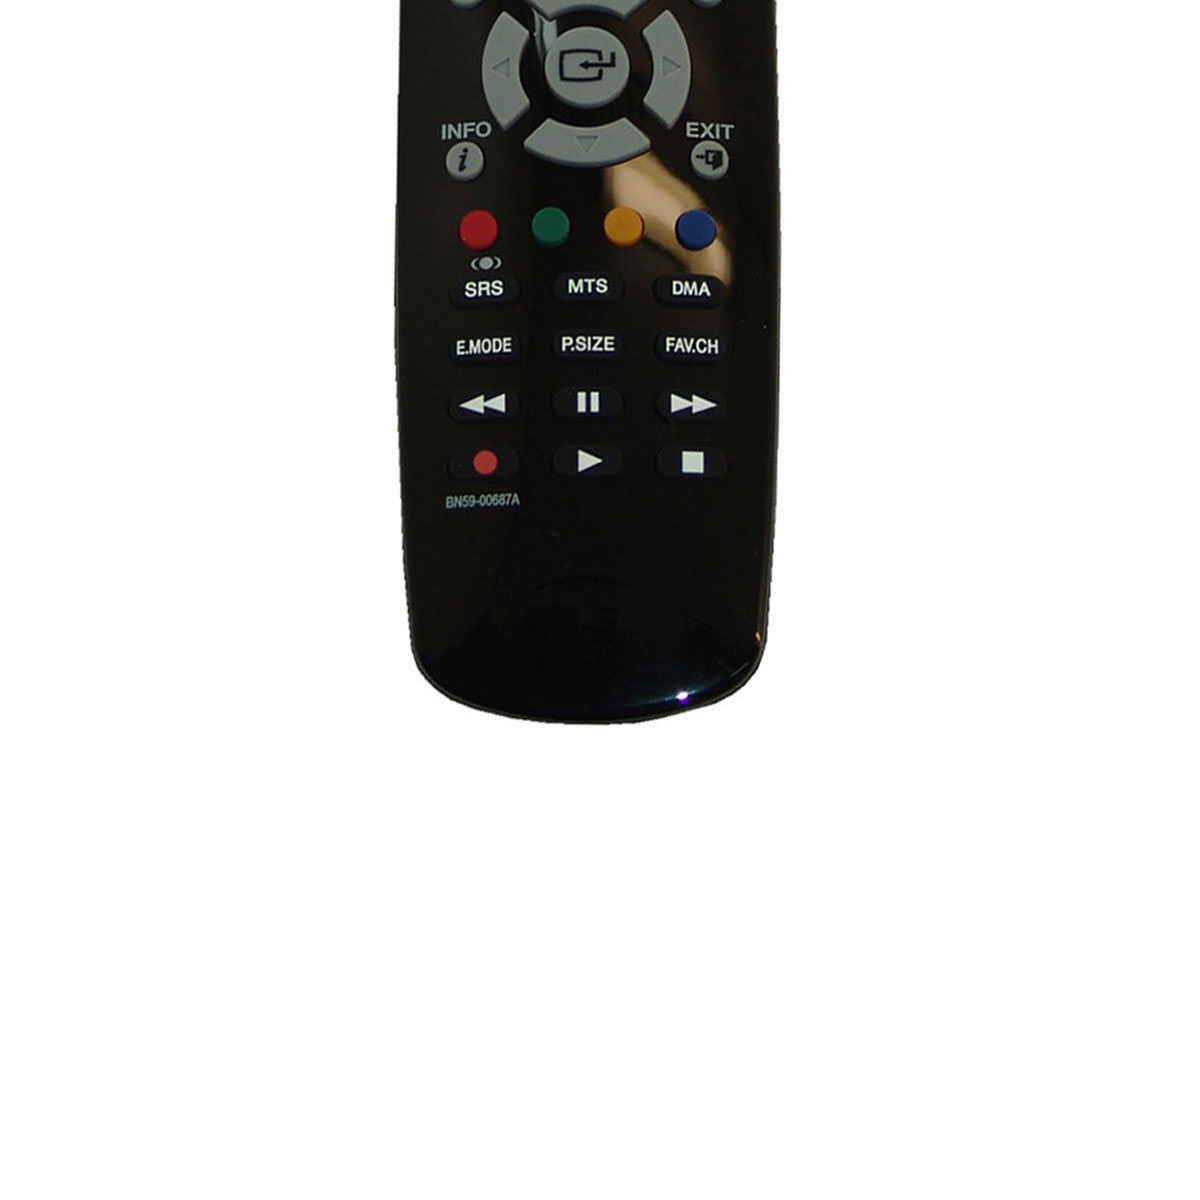 Replacement TV Remote Control For Samsung LE40A553P4RXXH